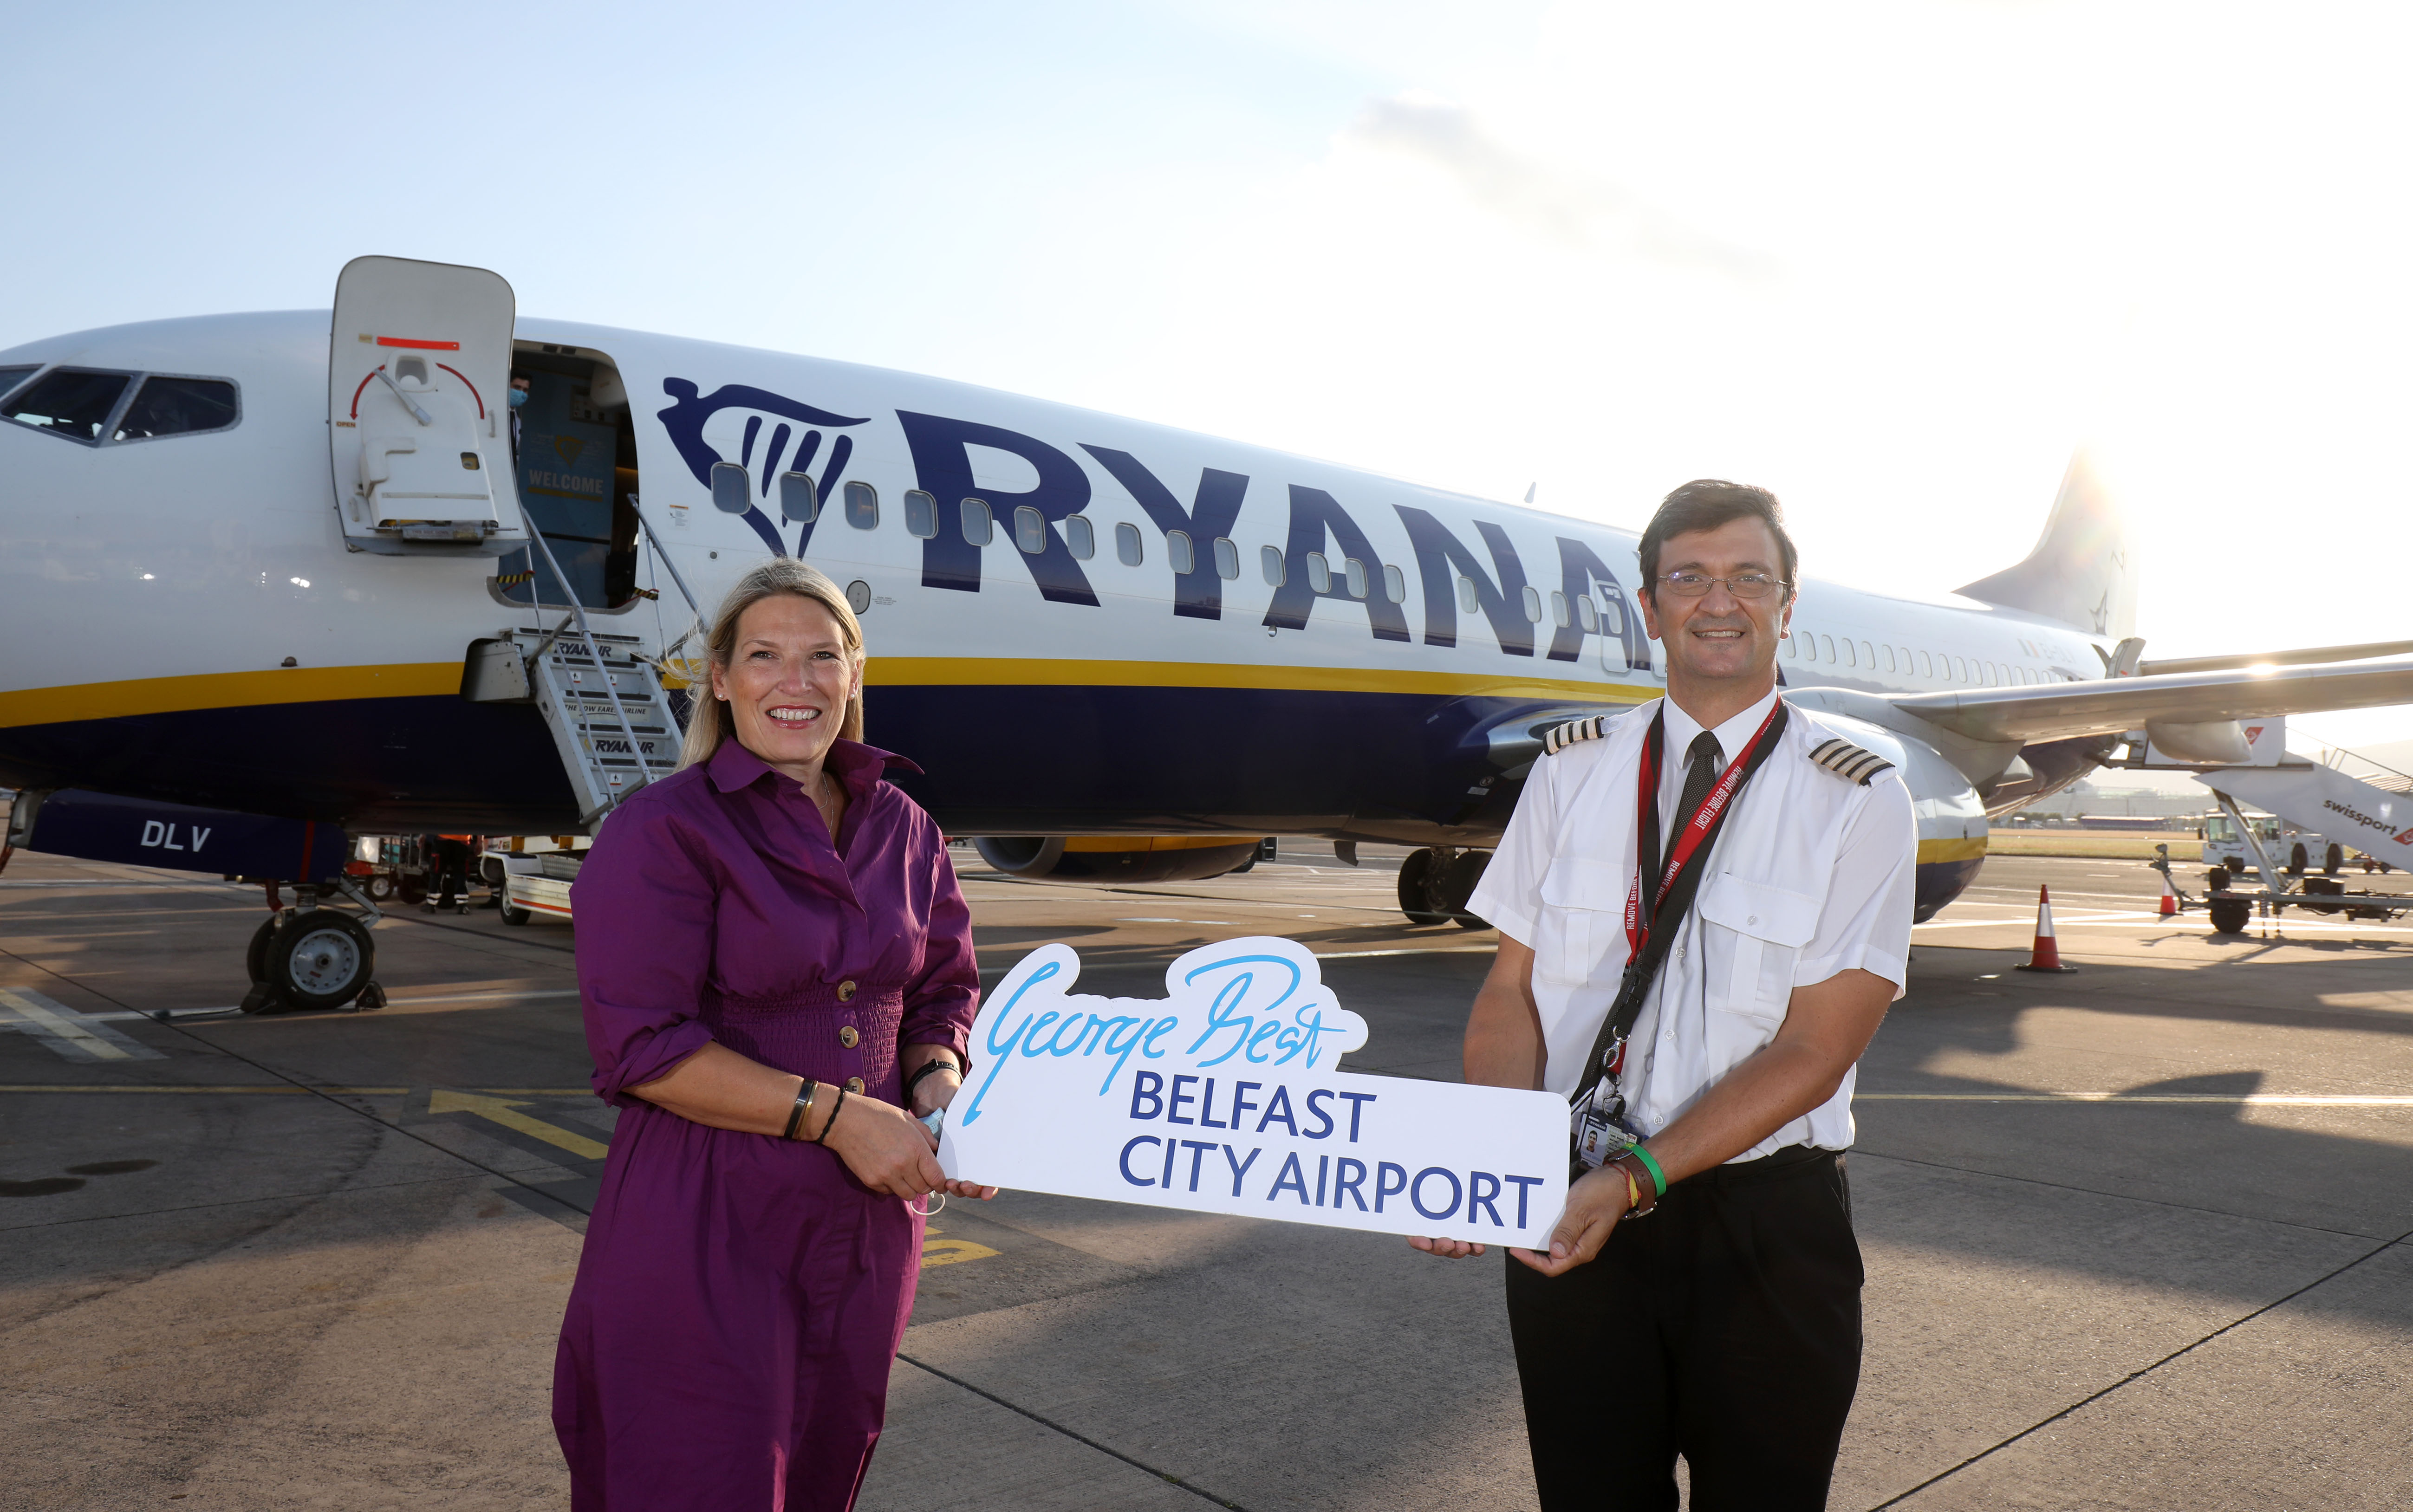 Judith Davis and Ryanair pilot standing in front of an aircraft